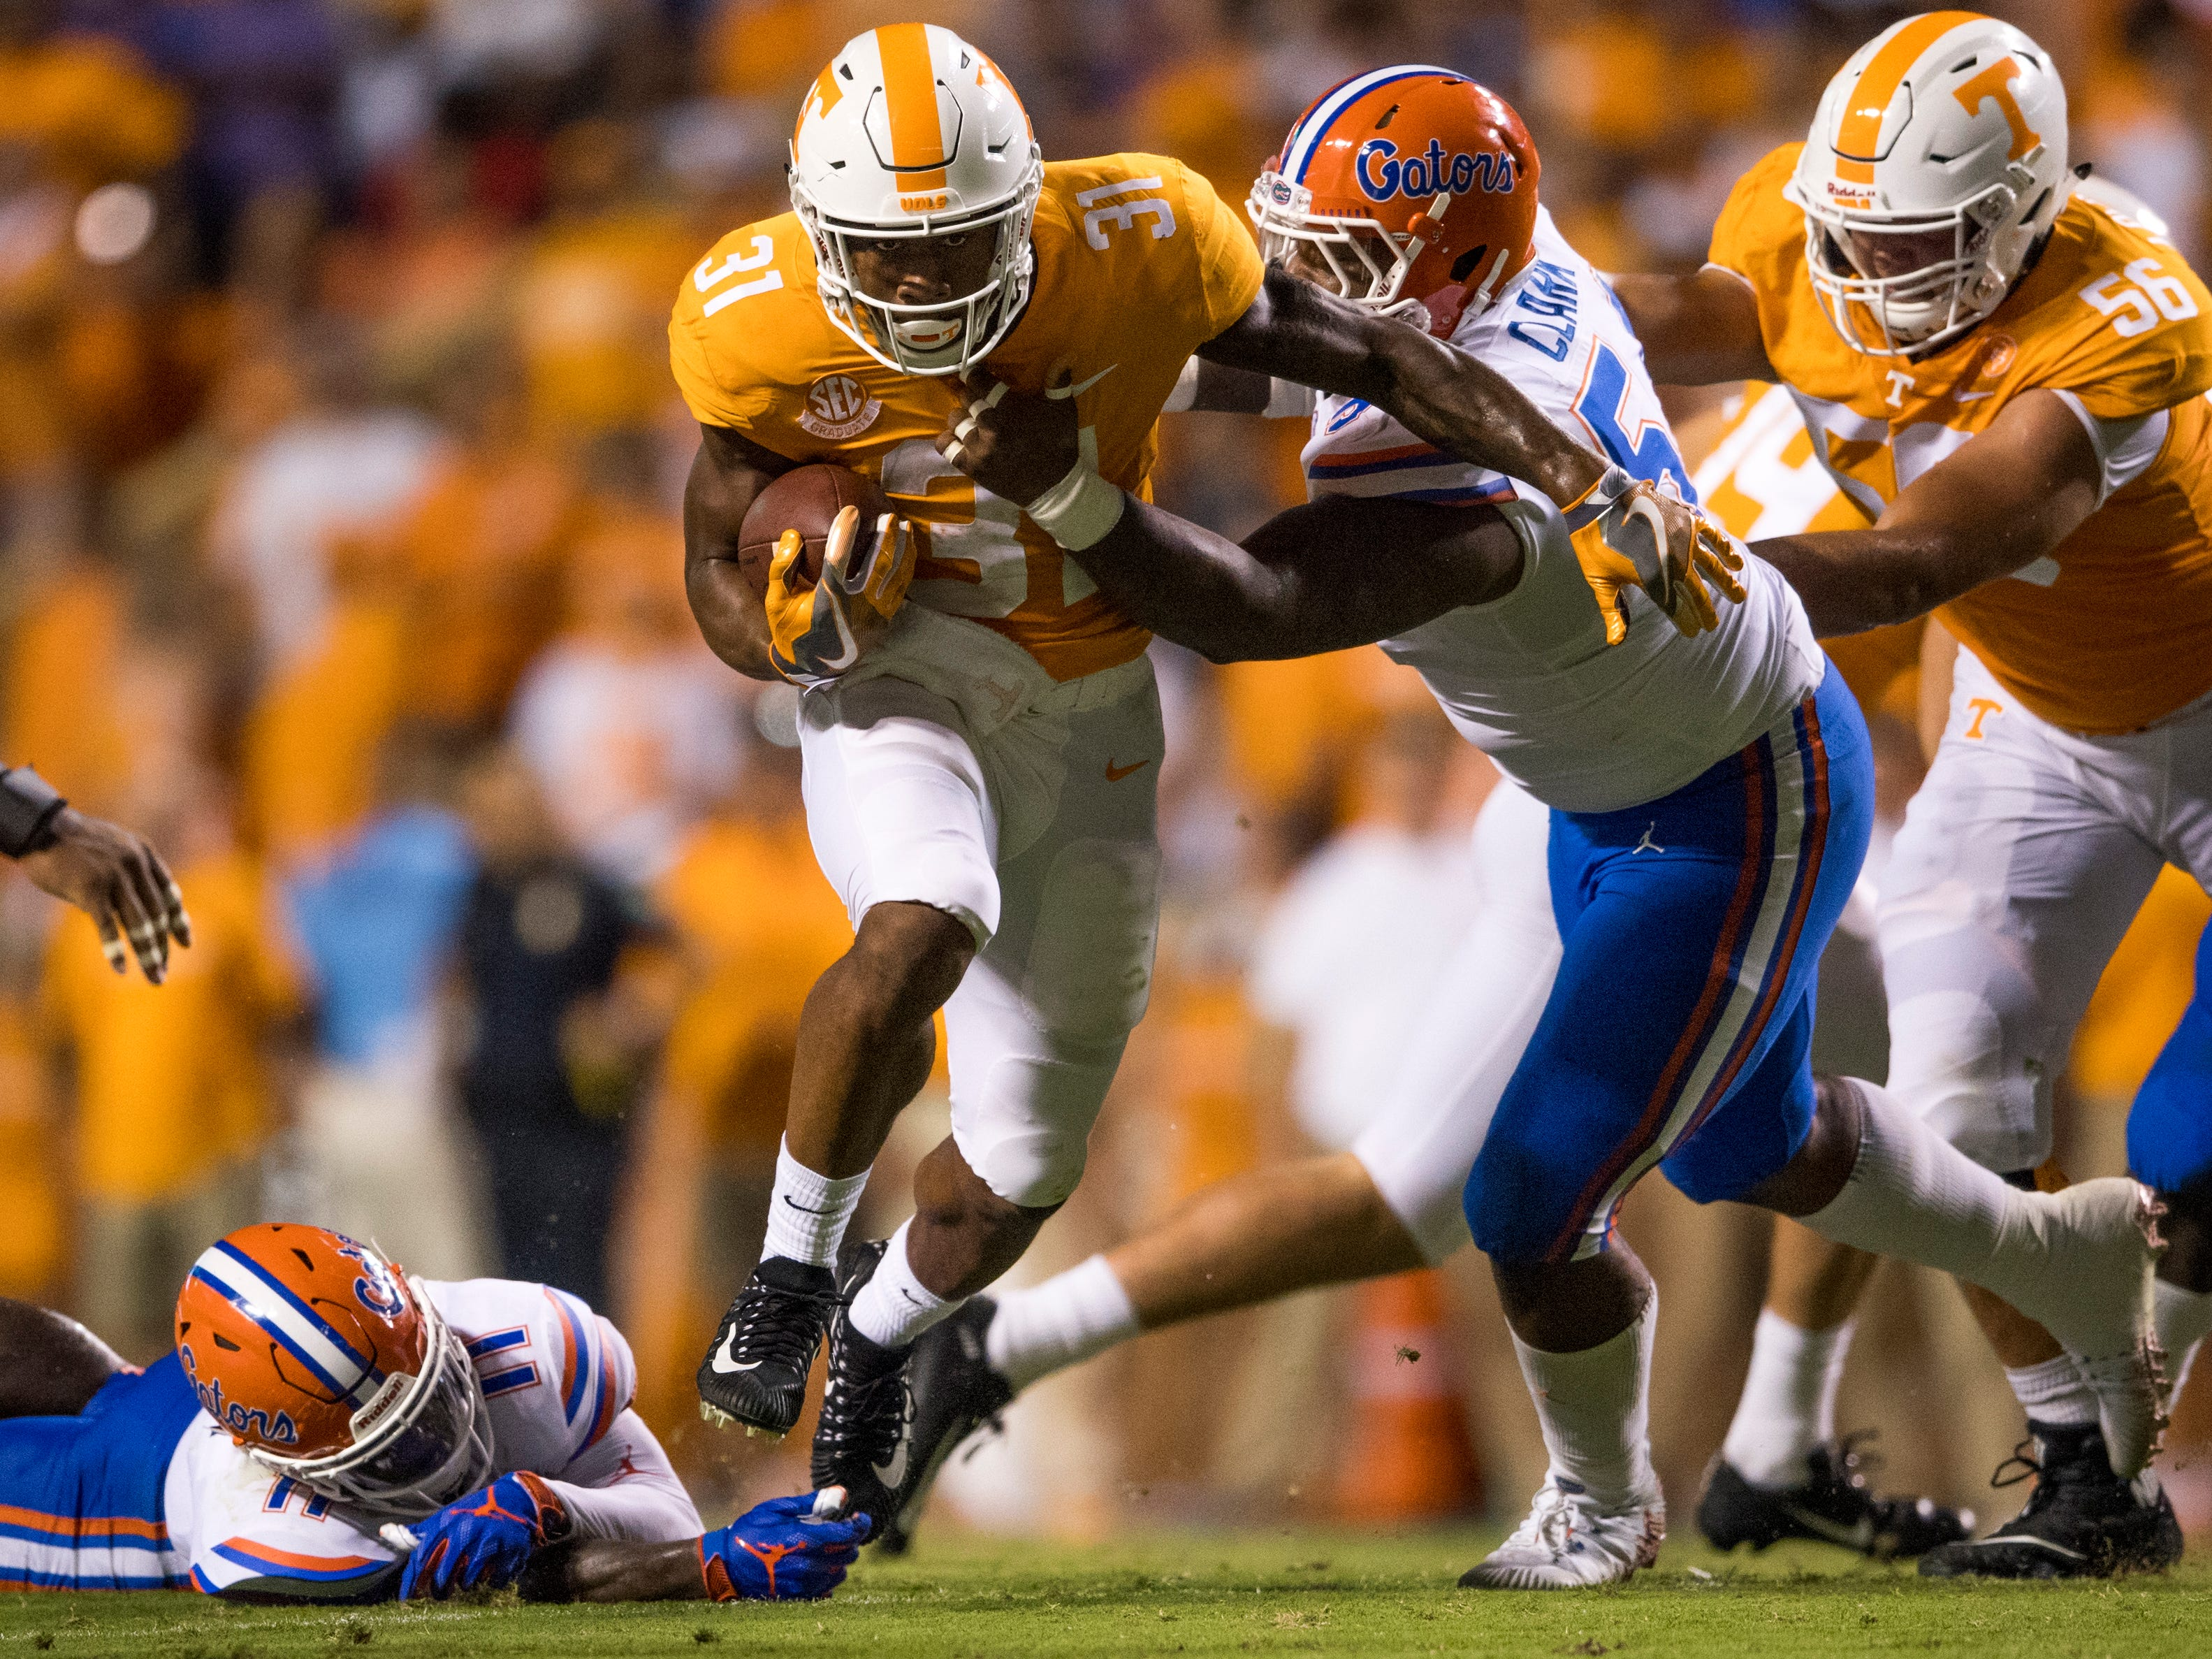 Tennessee running back Madre London (31) fights for yards during the Tennessee Volunteers' game against Florida in Neyland Stadium on Saturday, Sept. 22, 2018.